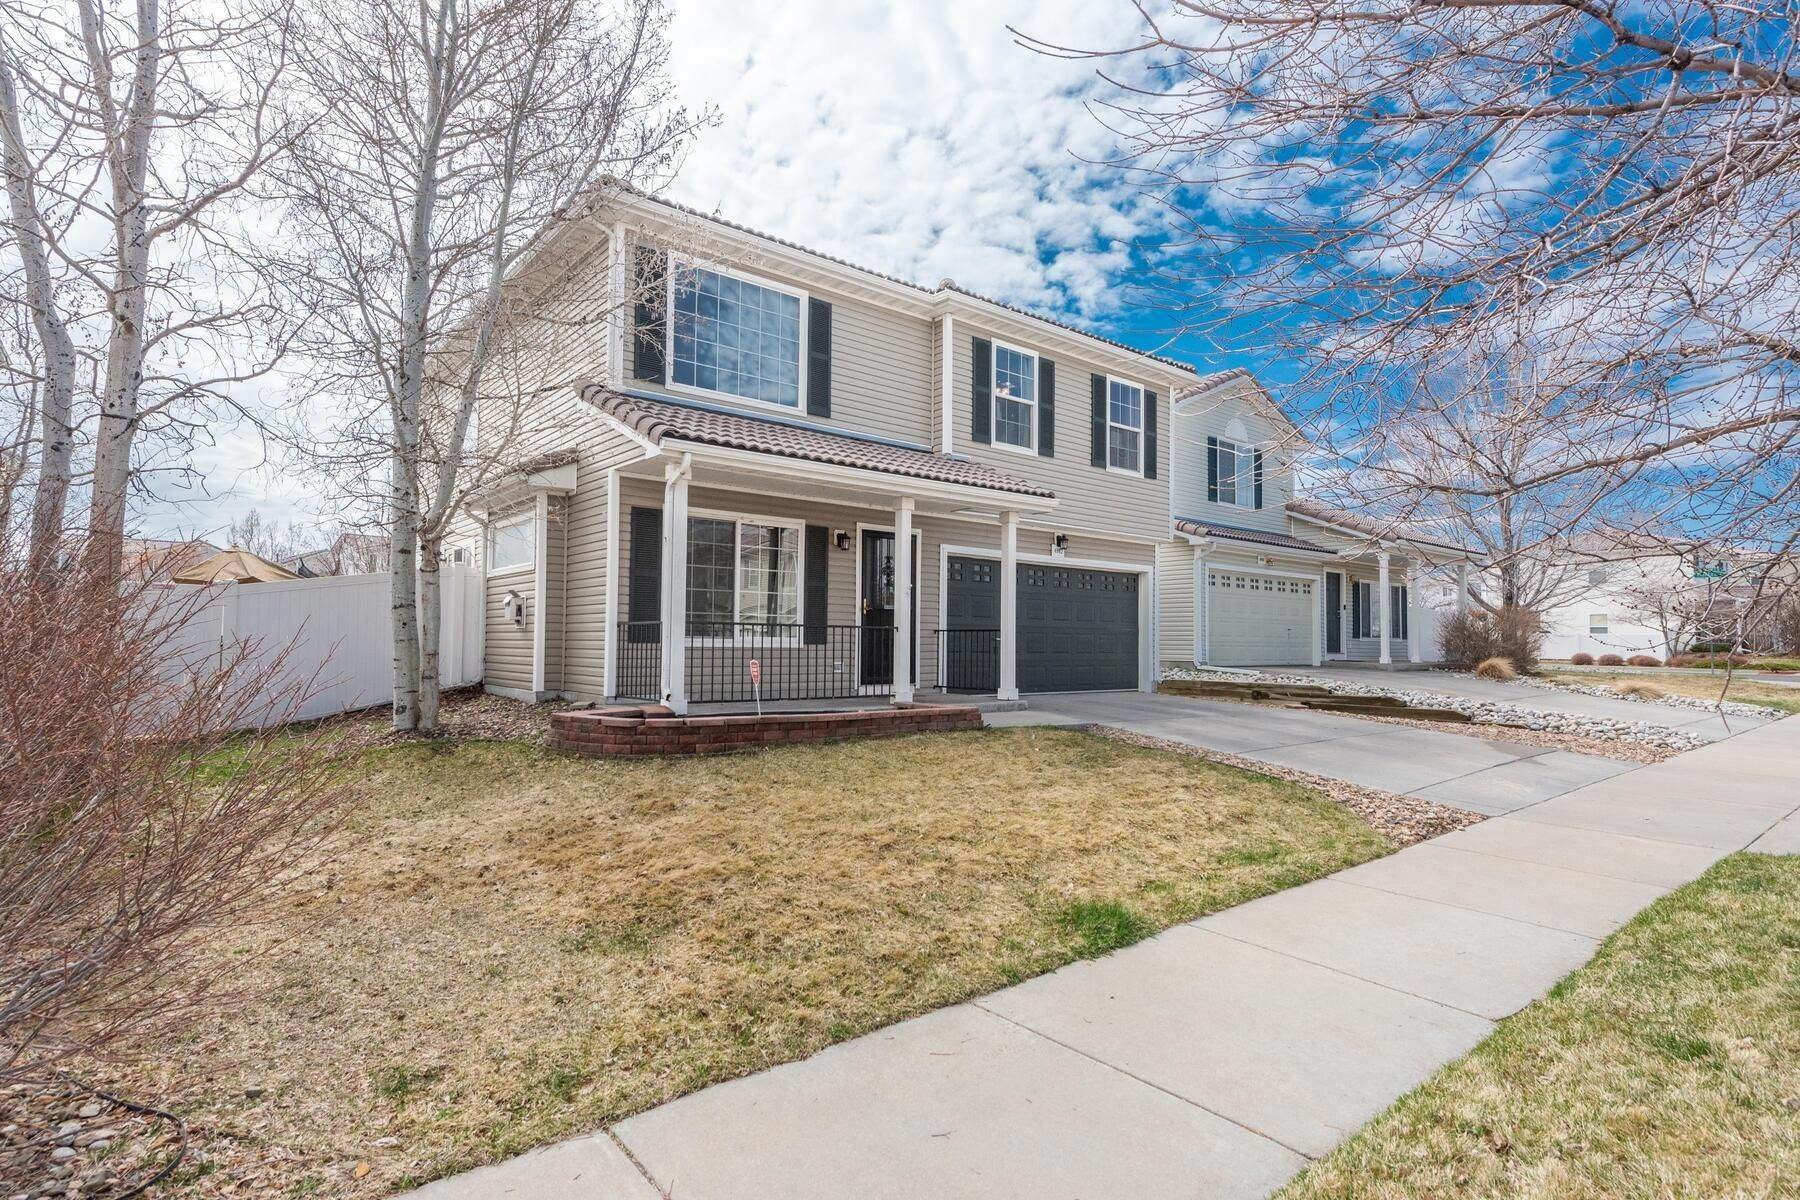 Single Family Homes for Active at Gorgeous & Extremely Well Maintained Green Valley Home! 4982 Fundy Street Denver, Colorado 80249 United States